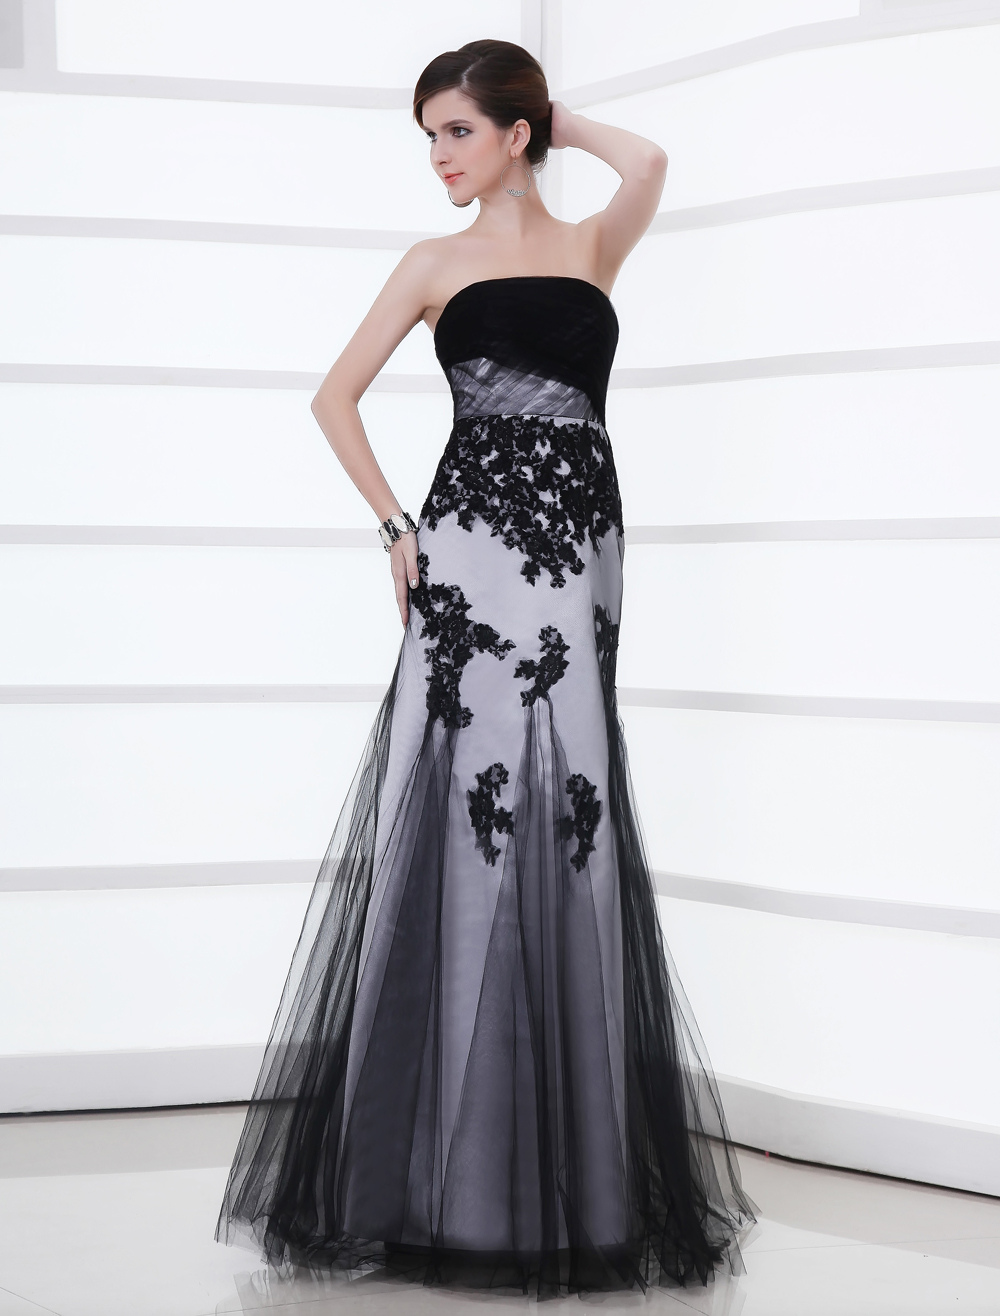 Black Wedding Dress Strapless Lace Applique Tulle Mermaid Gown